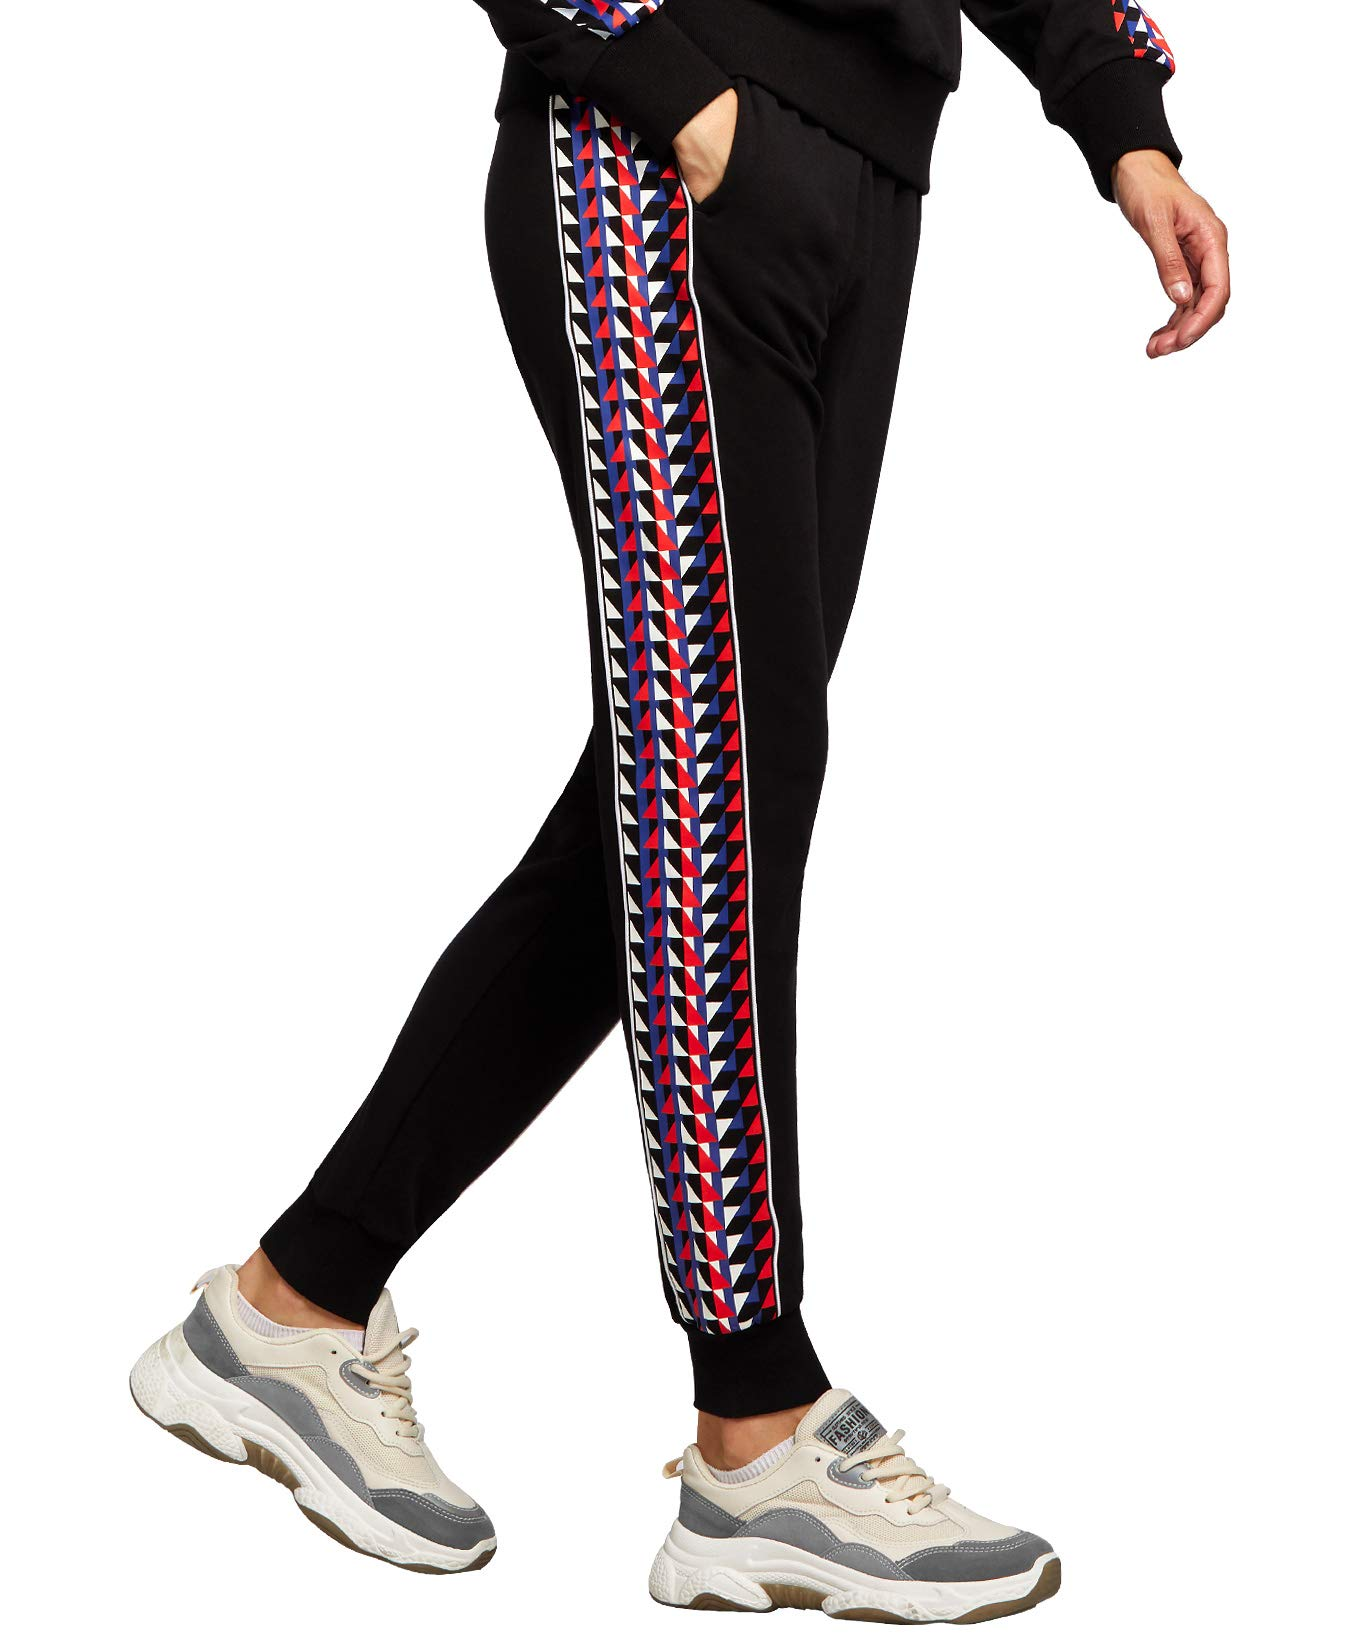 QUEENIEKE Women Active Sweatpants Workout Rib Cuff Jogger Pants with Pockets 90421